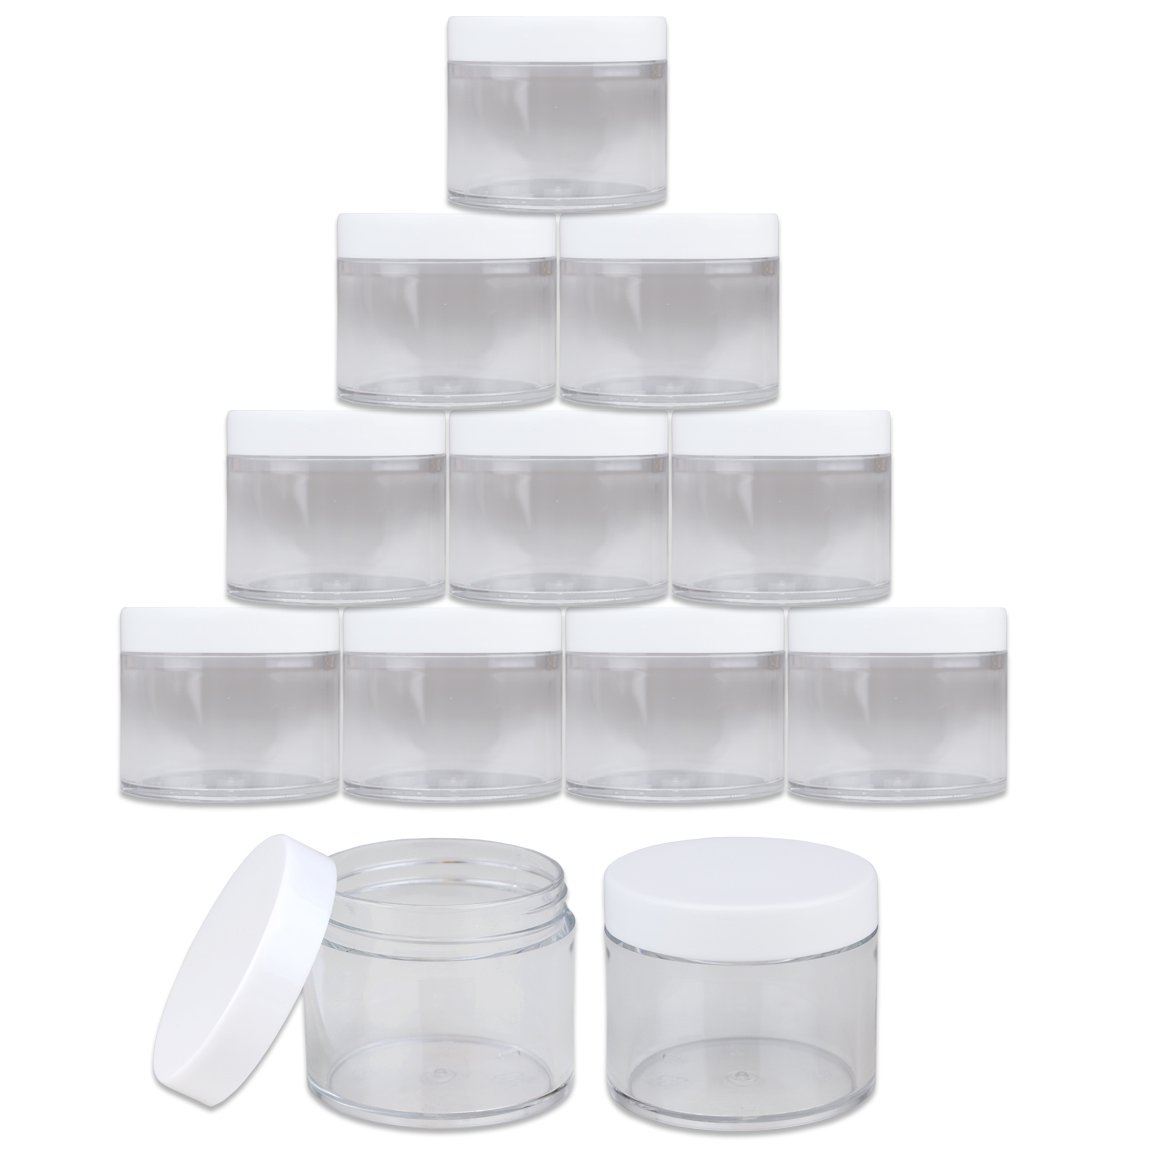 Beauticom 60 Grams/60 ML (2 Oz) Round Clear Leak Proof Plastic Container Jars with White Lids for Travel Storage Makeup Cosmetic Lotion Scrubs Creams Oils Salves Ointments (12 Jars)